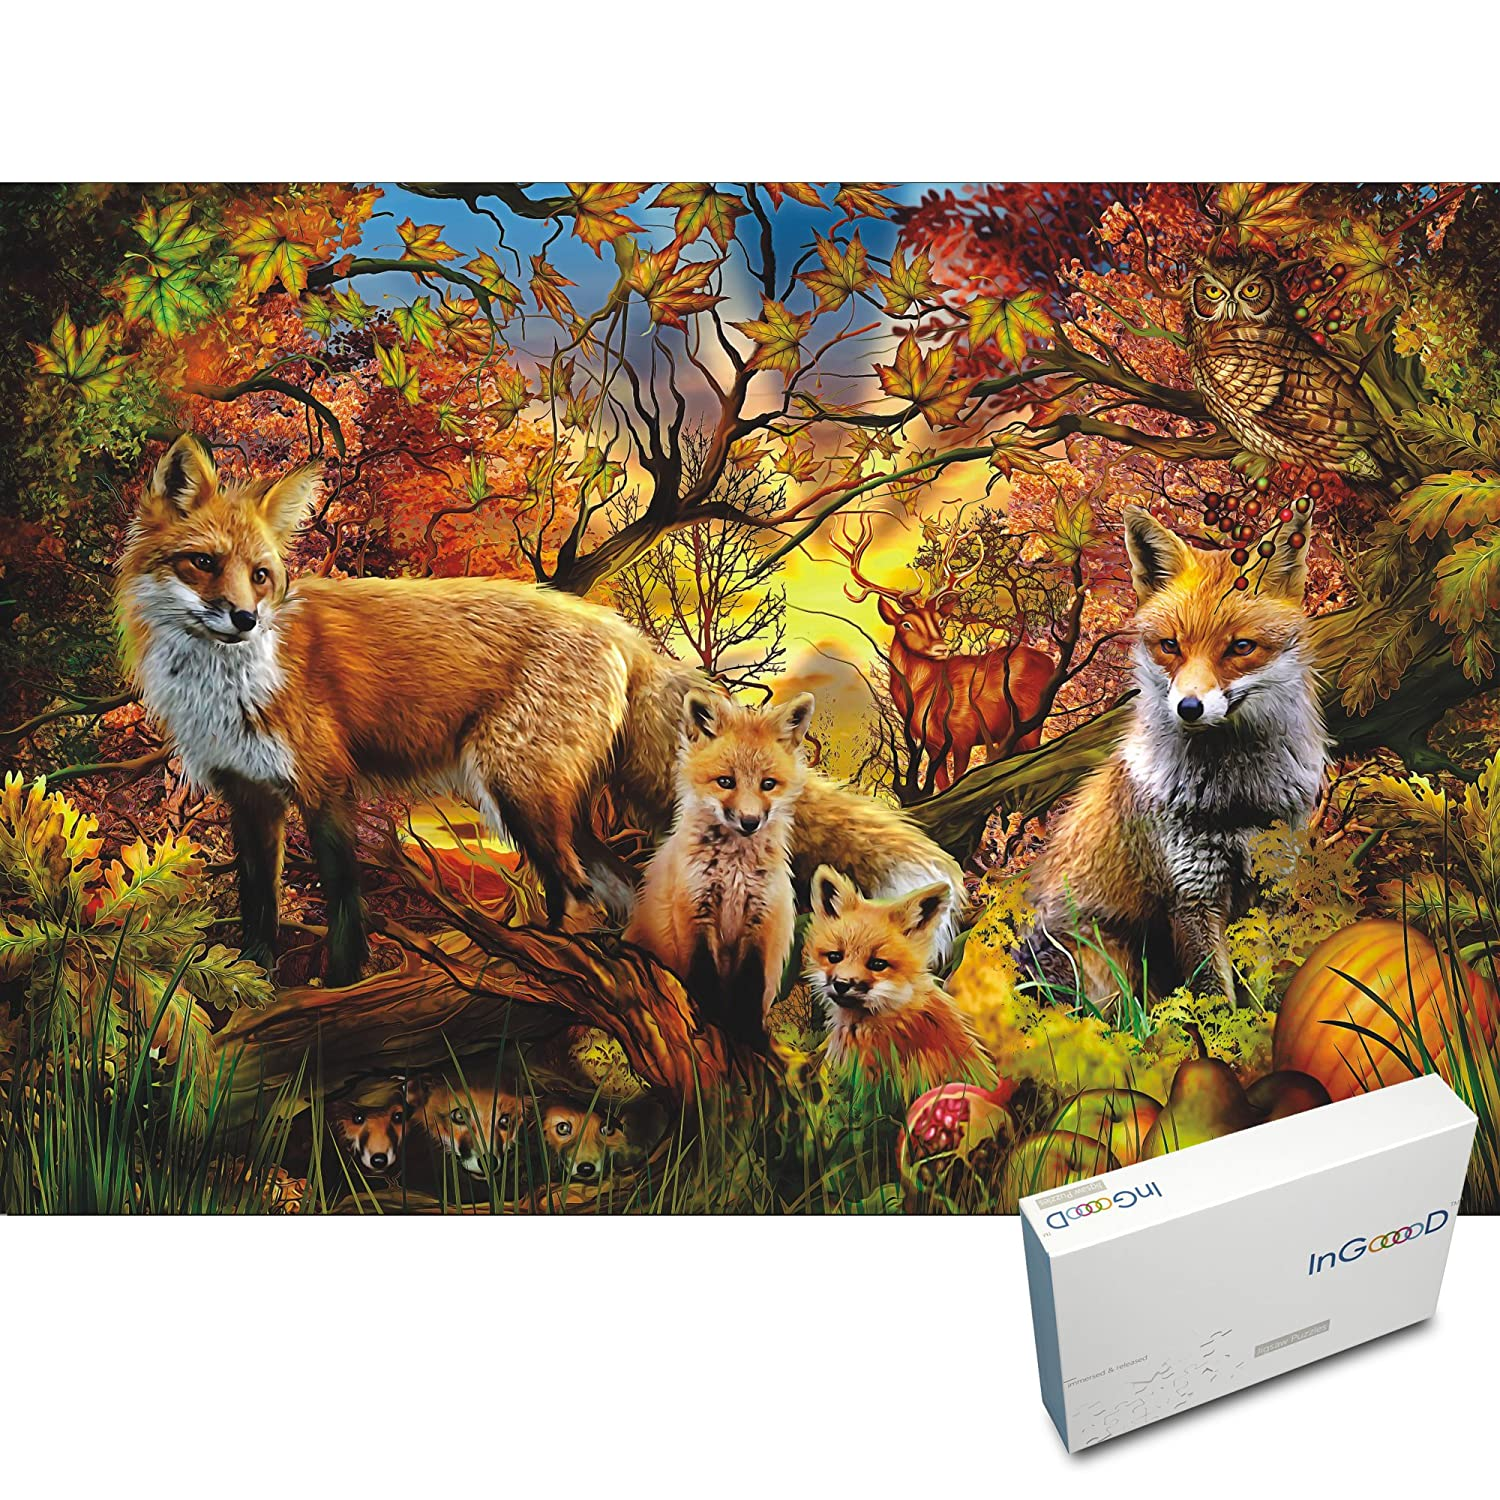 Ingooood 300 Pieces Cardboard Jigsaw Puzzles For Adult Animals Newbeetleorgexploded Diagrams Part Numbers Gooood Stuff Series Autumn Family Of Wolves And Foxes